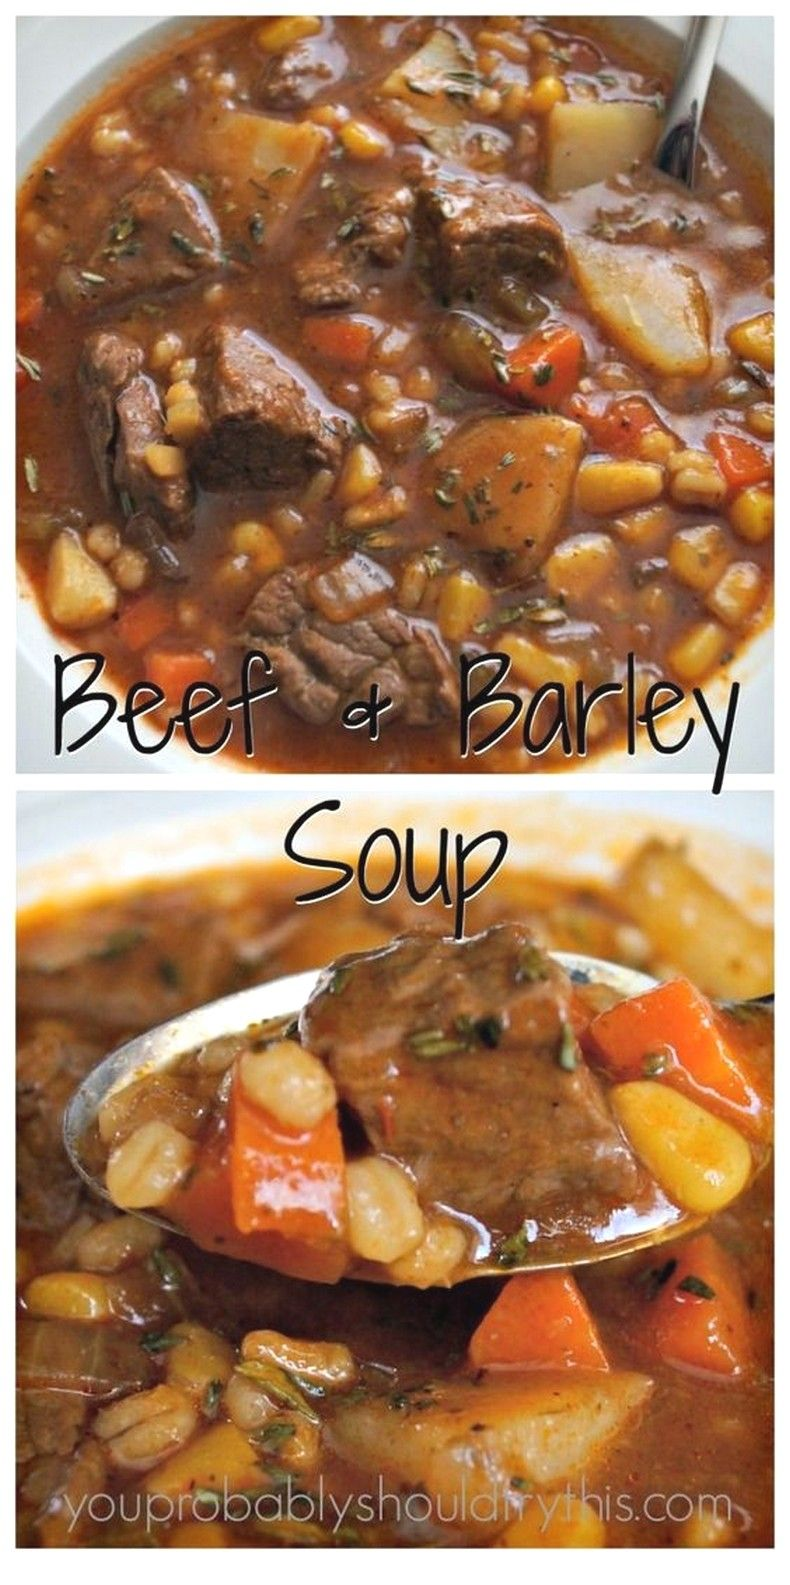 Easy Soup Recipes Ideas | Hearty Beef & Barley Soup images